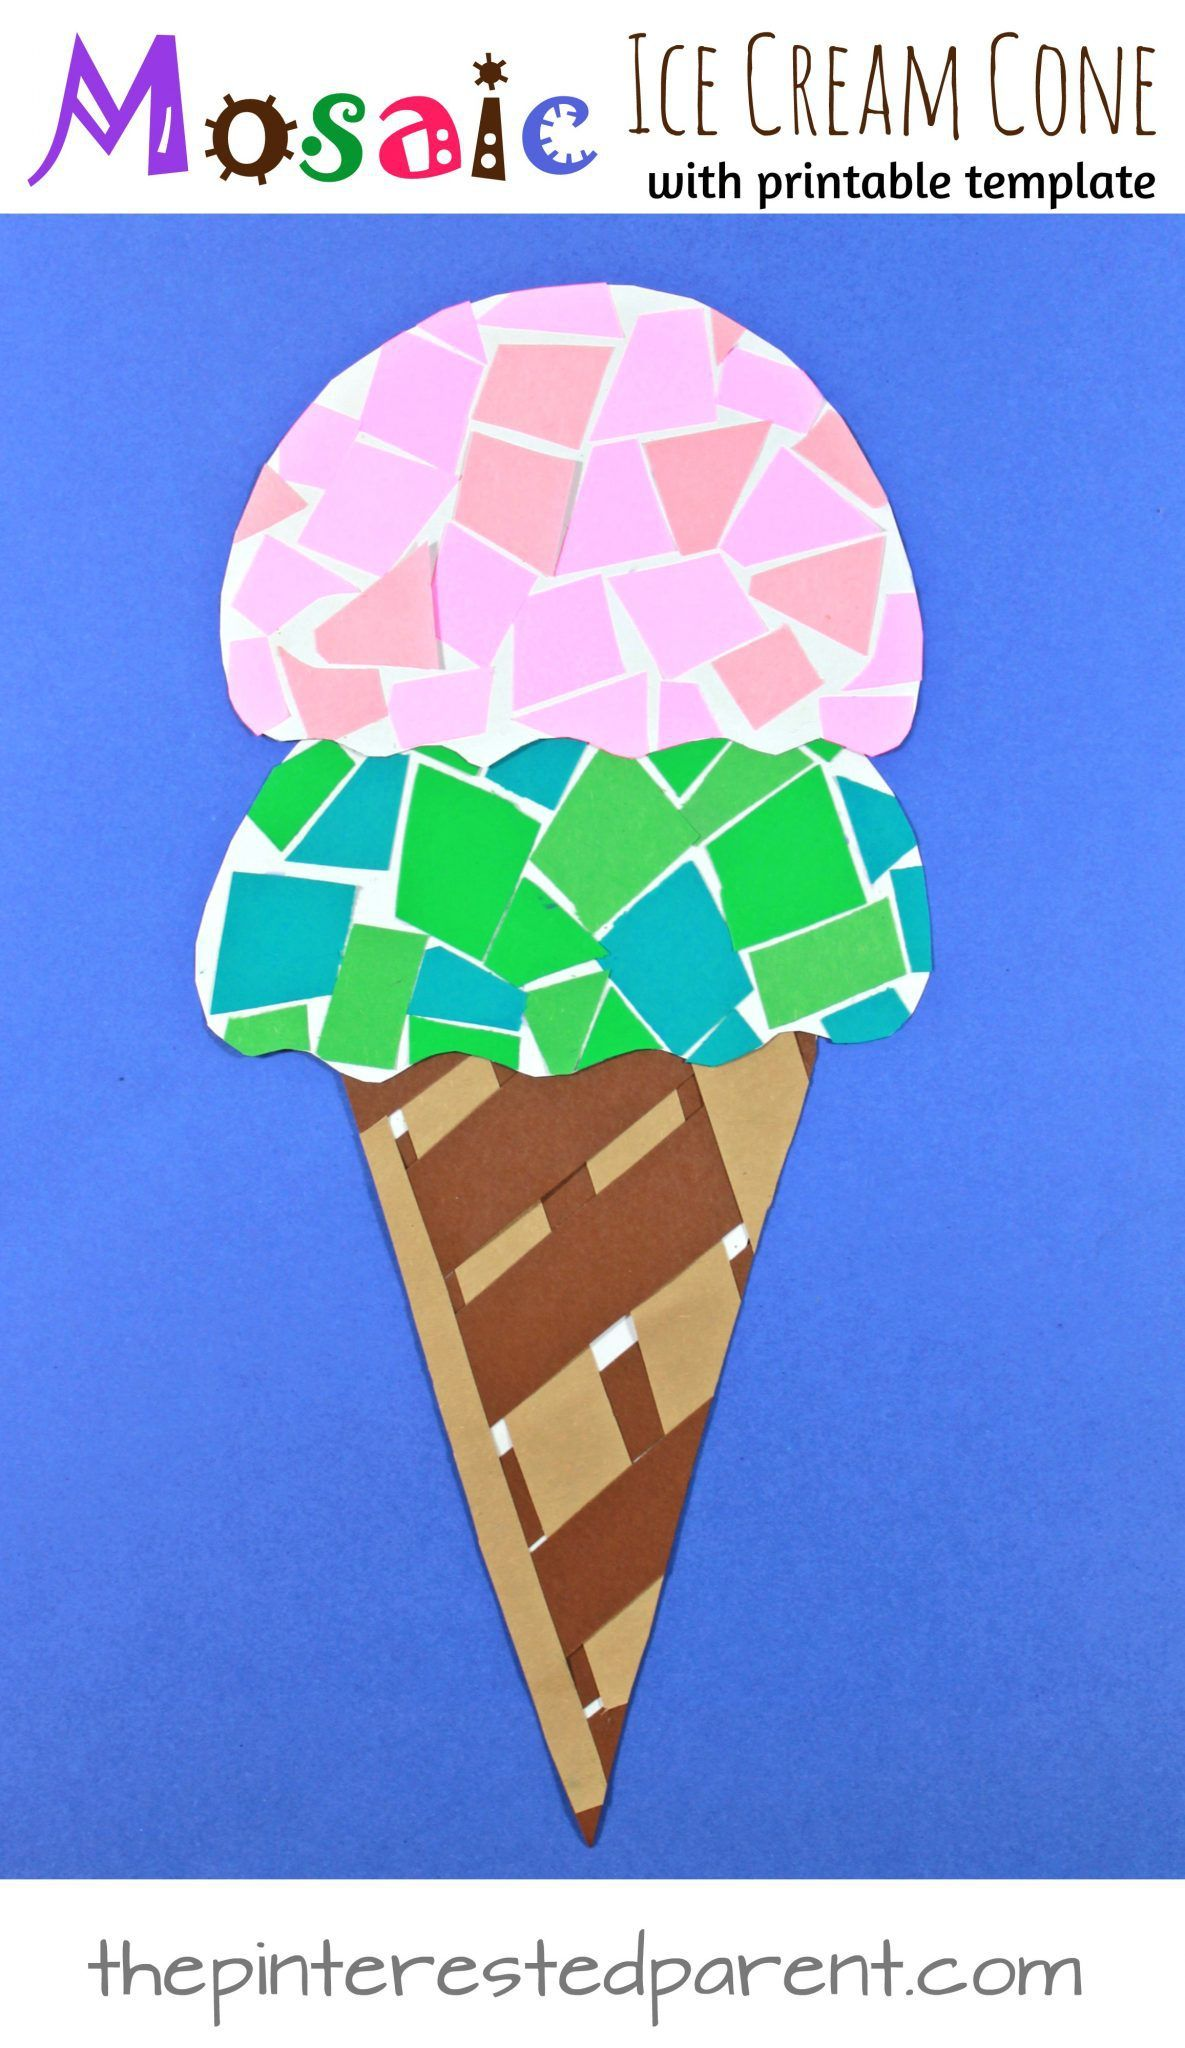 Paper mosaic ice cream cone craft with free printable for Ice cream cone paper craft